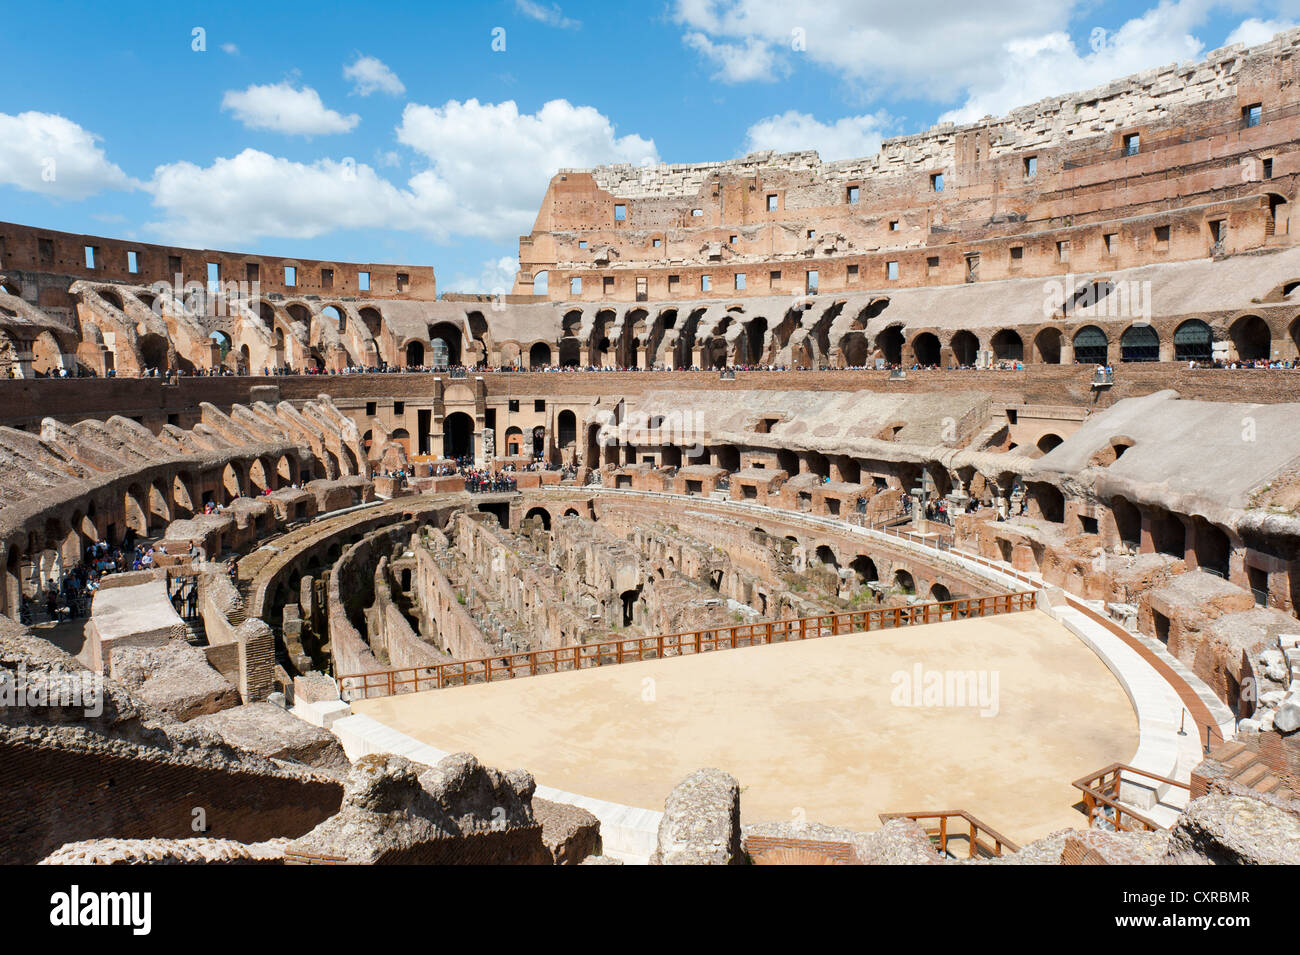 Gigantic ruins, amphitheatre, Colosseum, Colosseo, ancient Rome, Rome, Lazio, Italy, Southern Europe, Europe - Stock Image